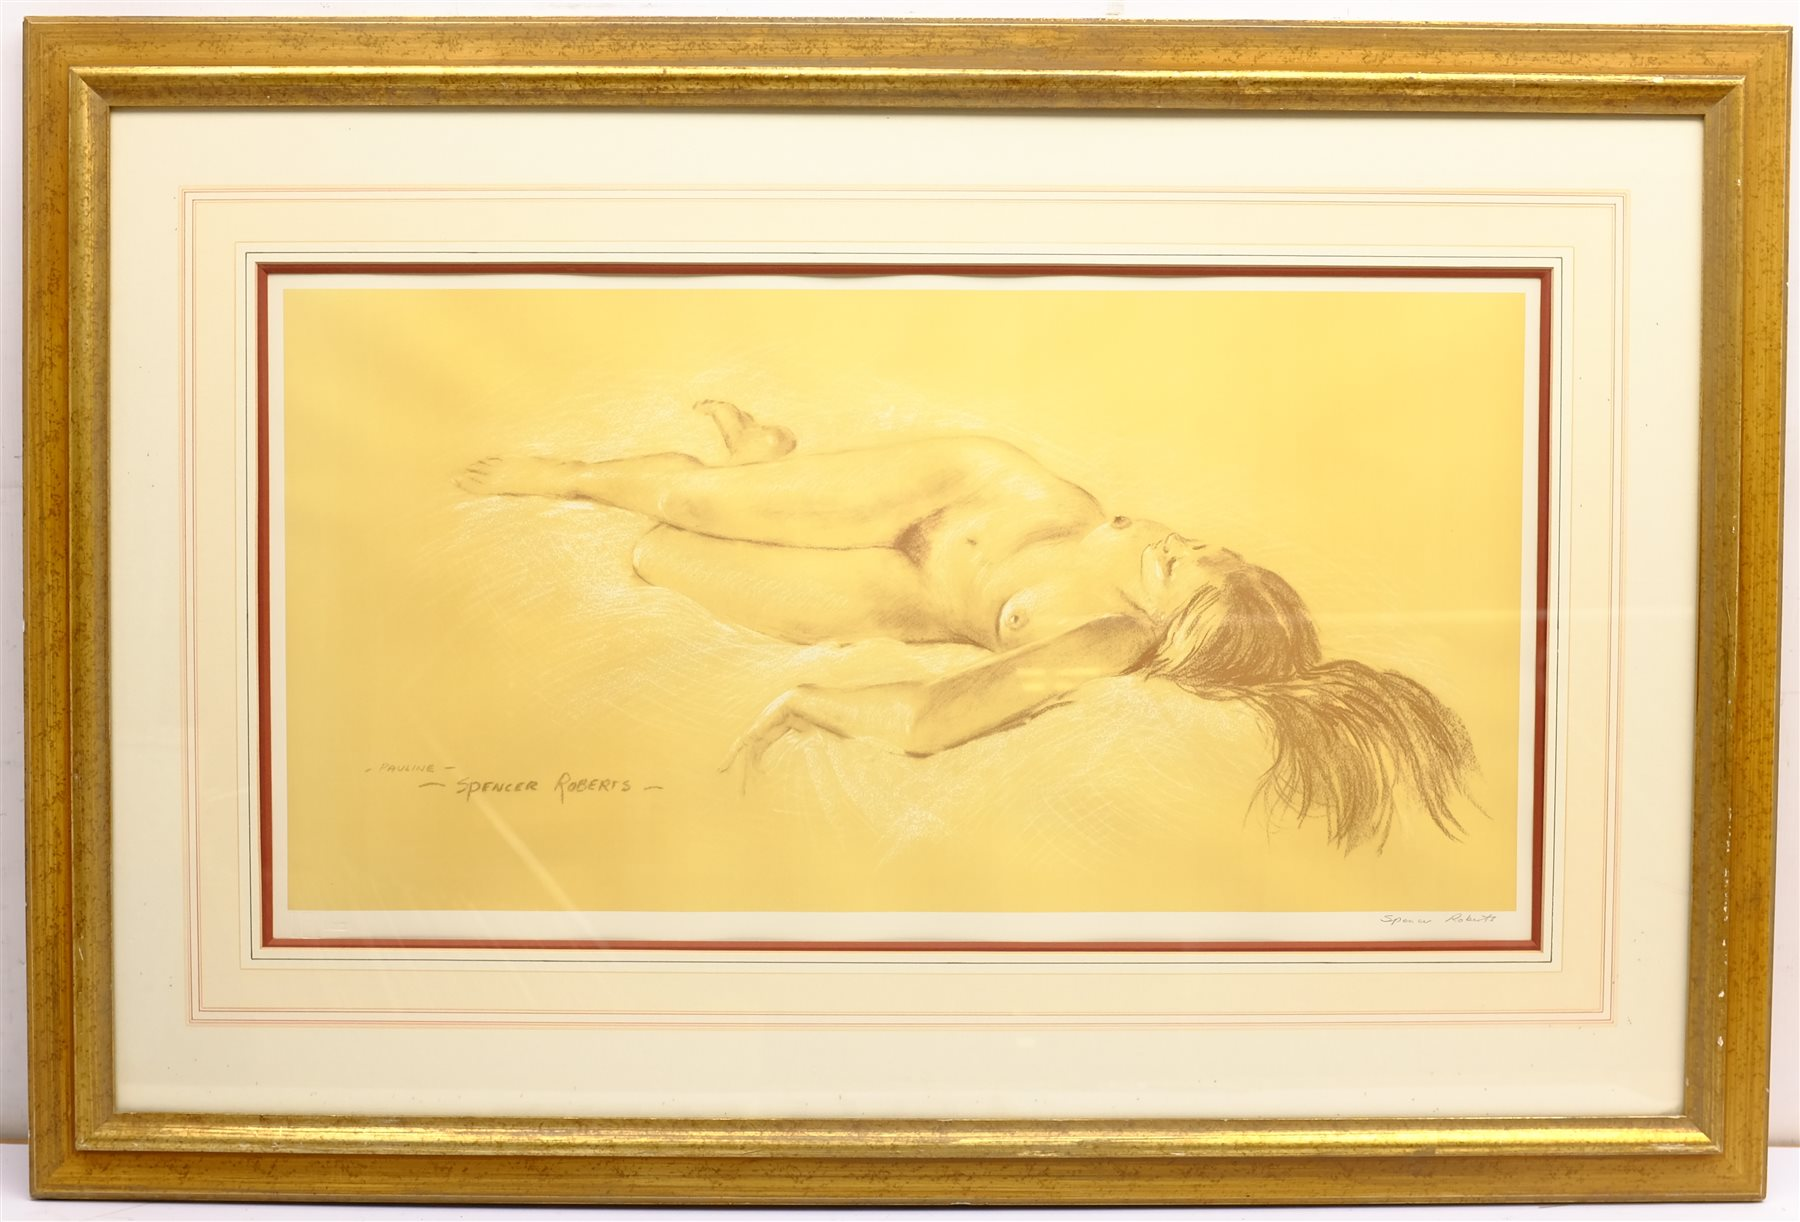 Arthur Spencer Roberts (British 1920-1997): 'Pauline', limited edition print signed in pencil with F - Image 3 of 4